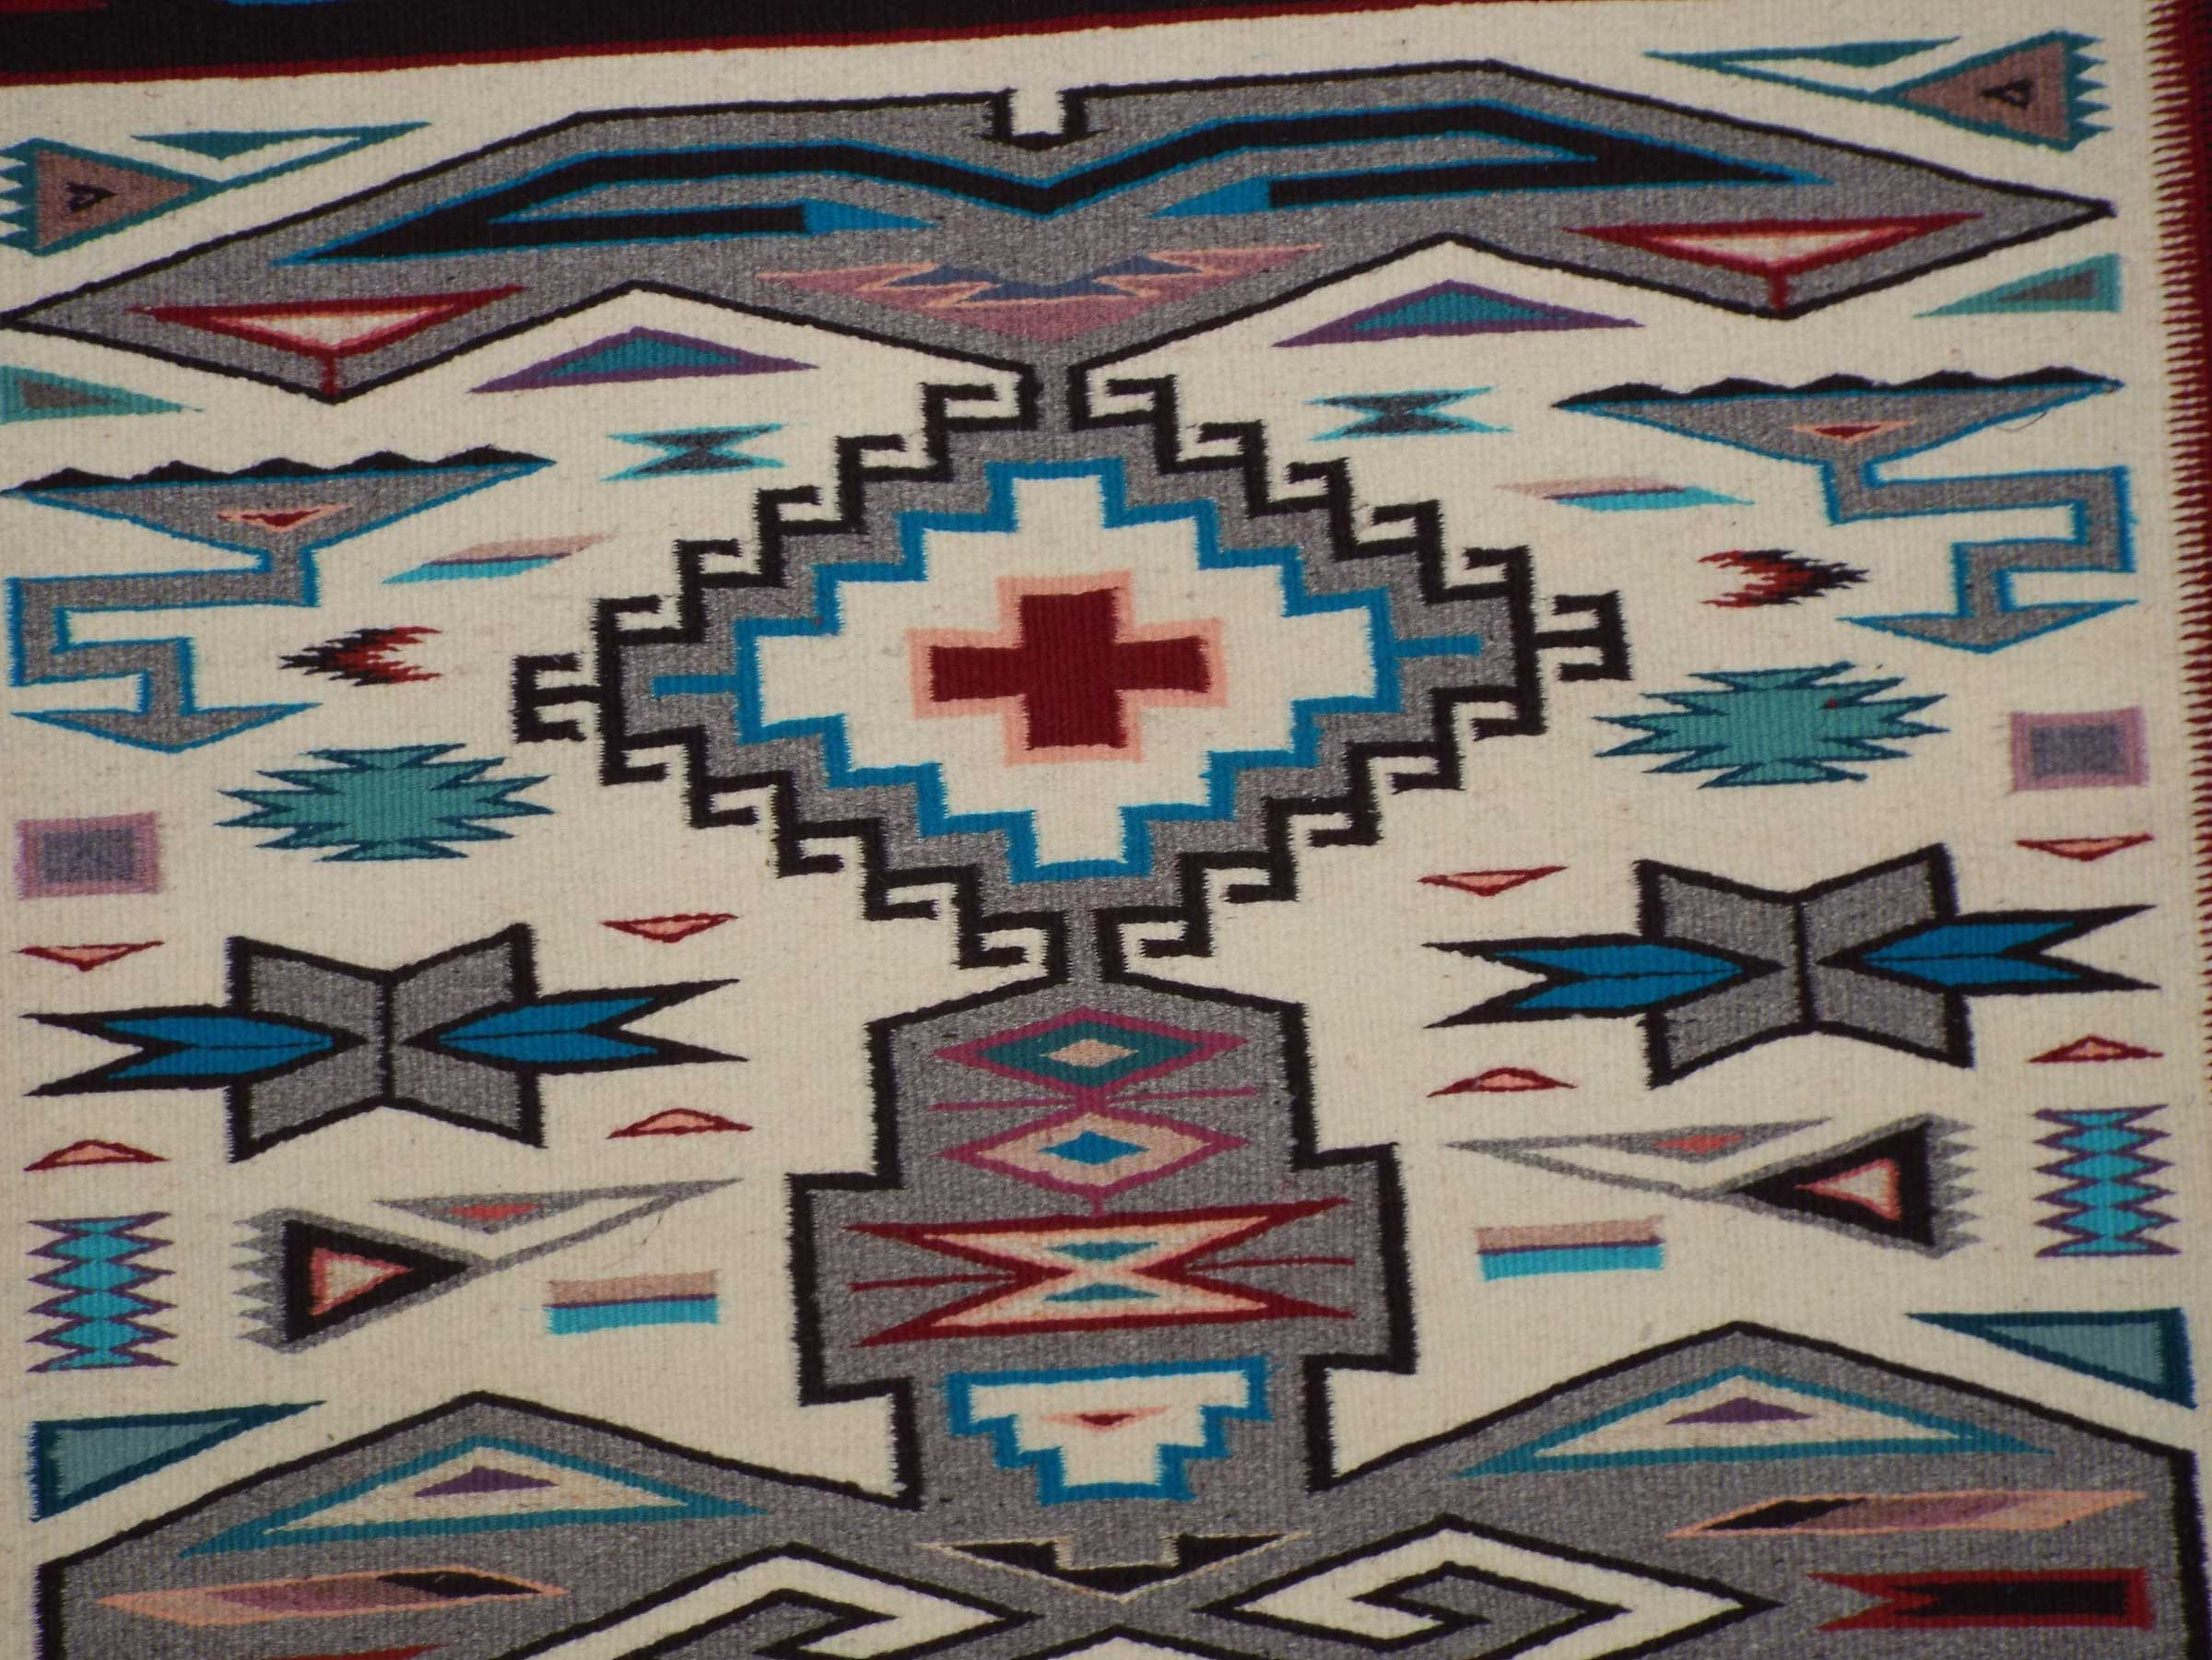 teec nos pos single men About navajo rugs back to native traditional rugs may have a spirit line--a single thread of yarn connecting the center of teec nos pos rug teec nos pos.